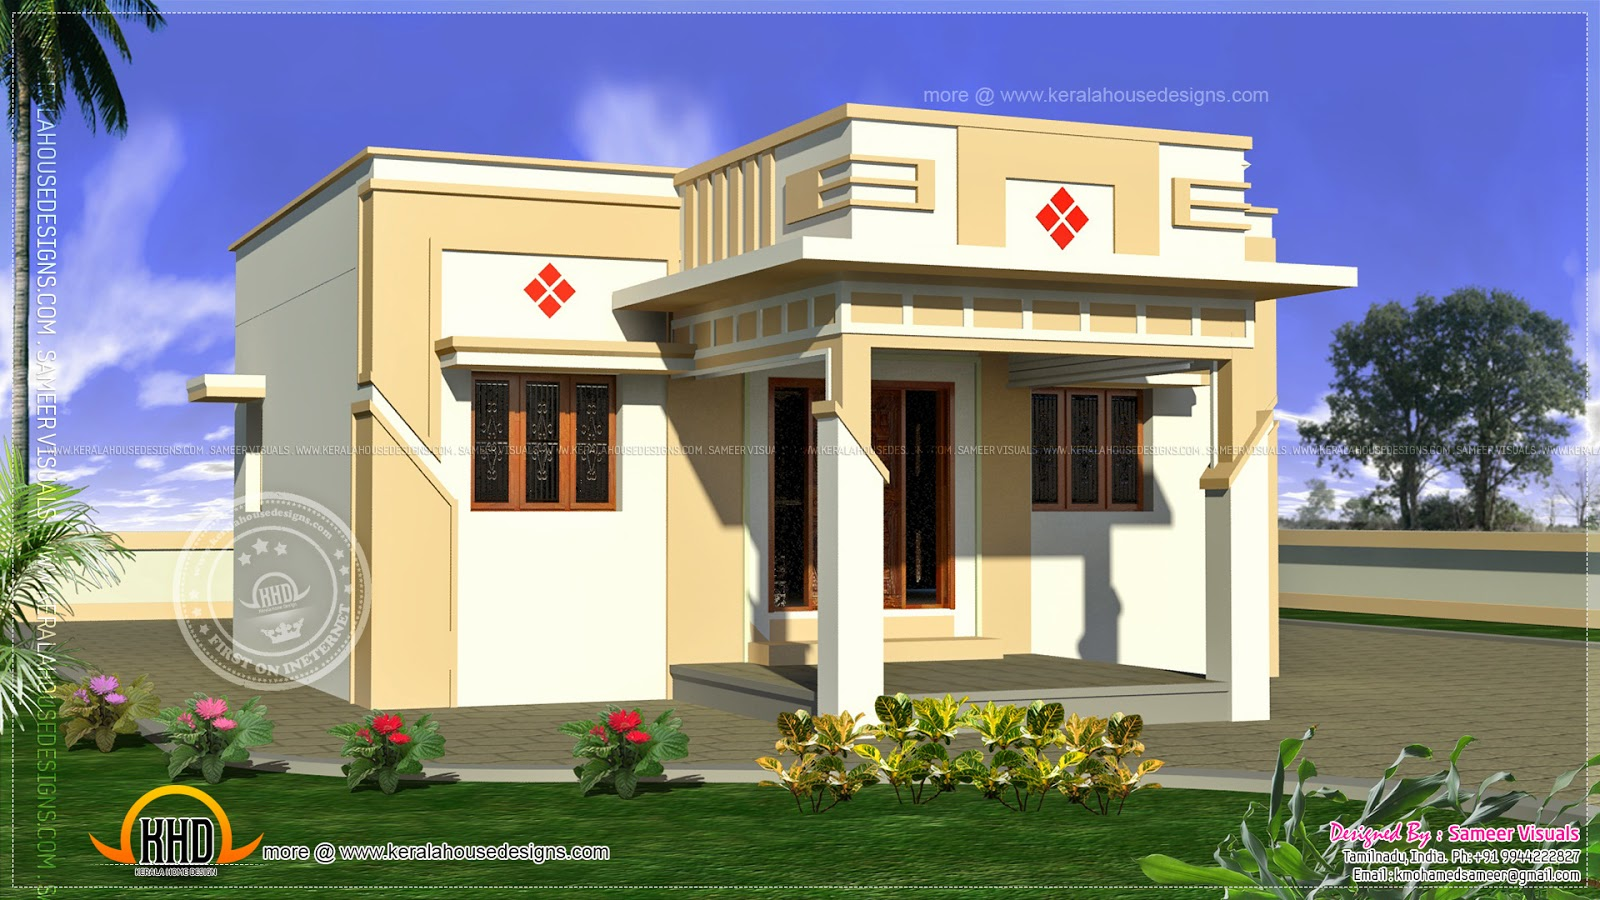 Low cost tamilnadu house kerala home design and floor plans for Indian house photo gallery